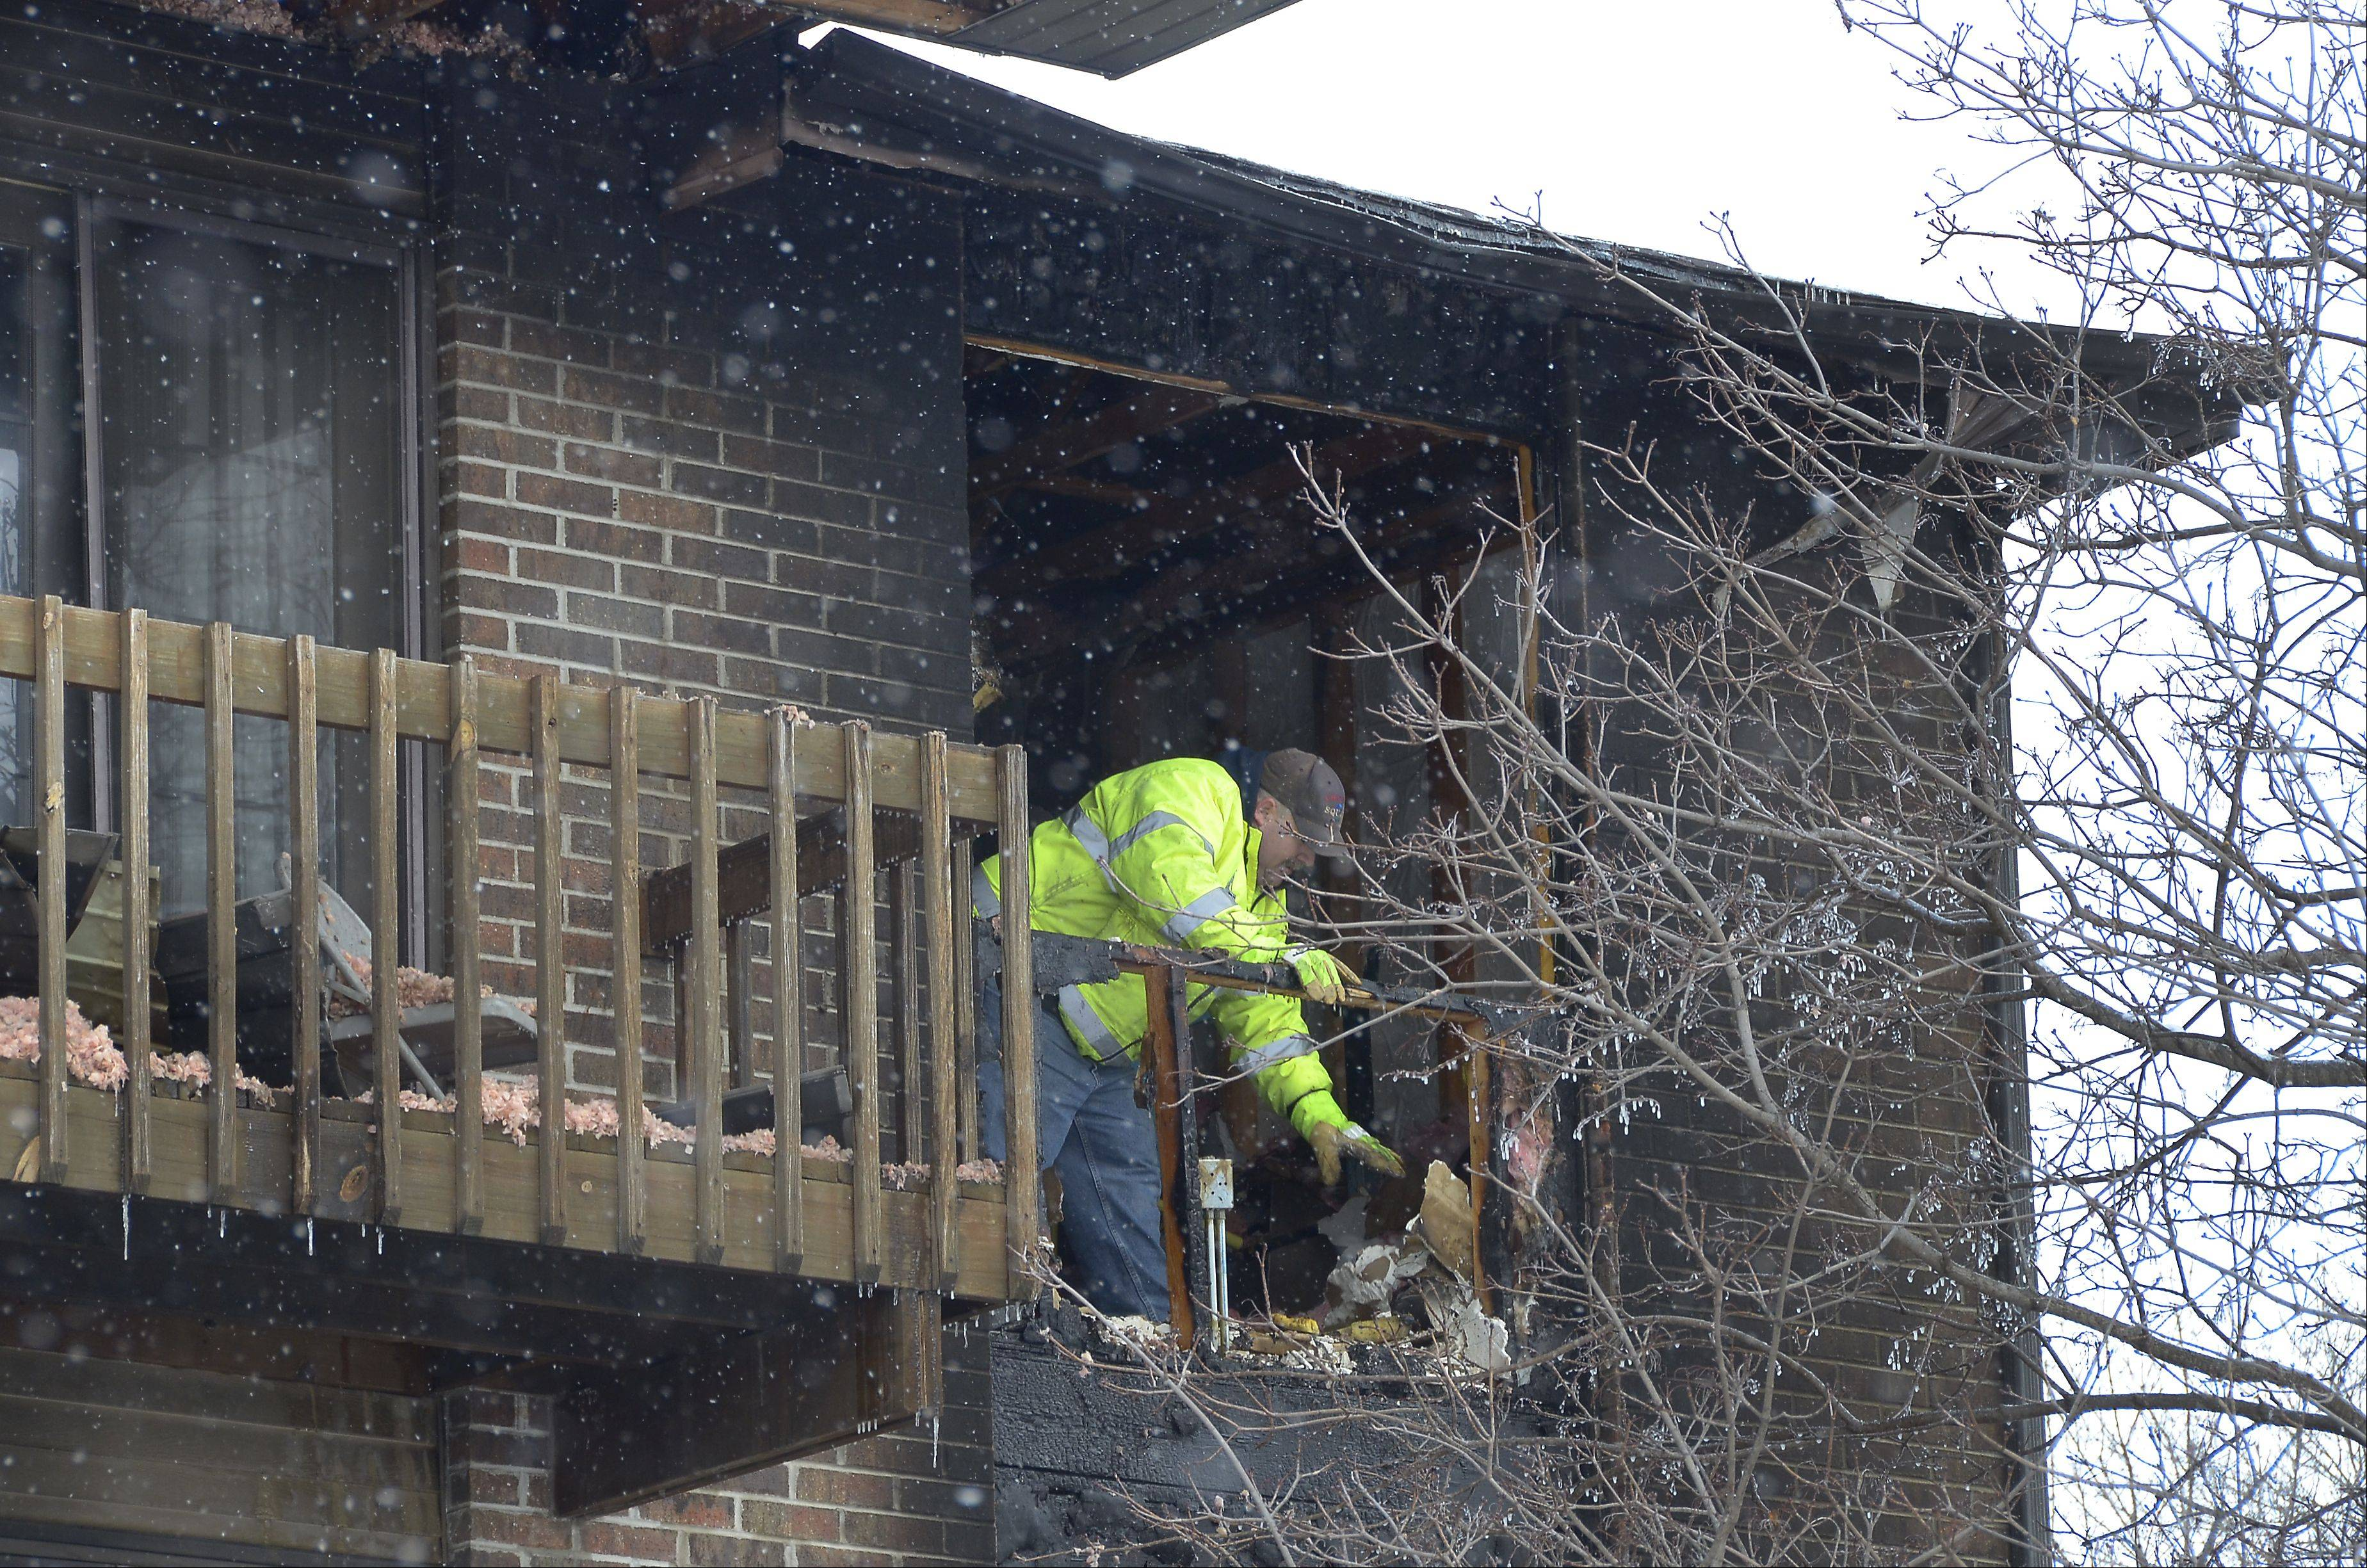 Tim Olk of 1-800 Board Up works at the scene of a fatal apartment fire Sunday morning in the Woodcreek Apartments complex in Huntley. Officials said one man was killed and about a dozen other residents were displaced by the early morning fire.